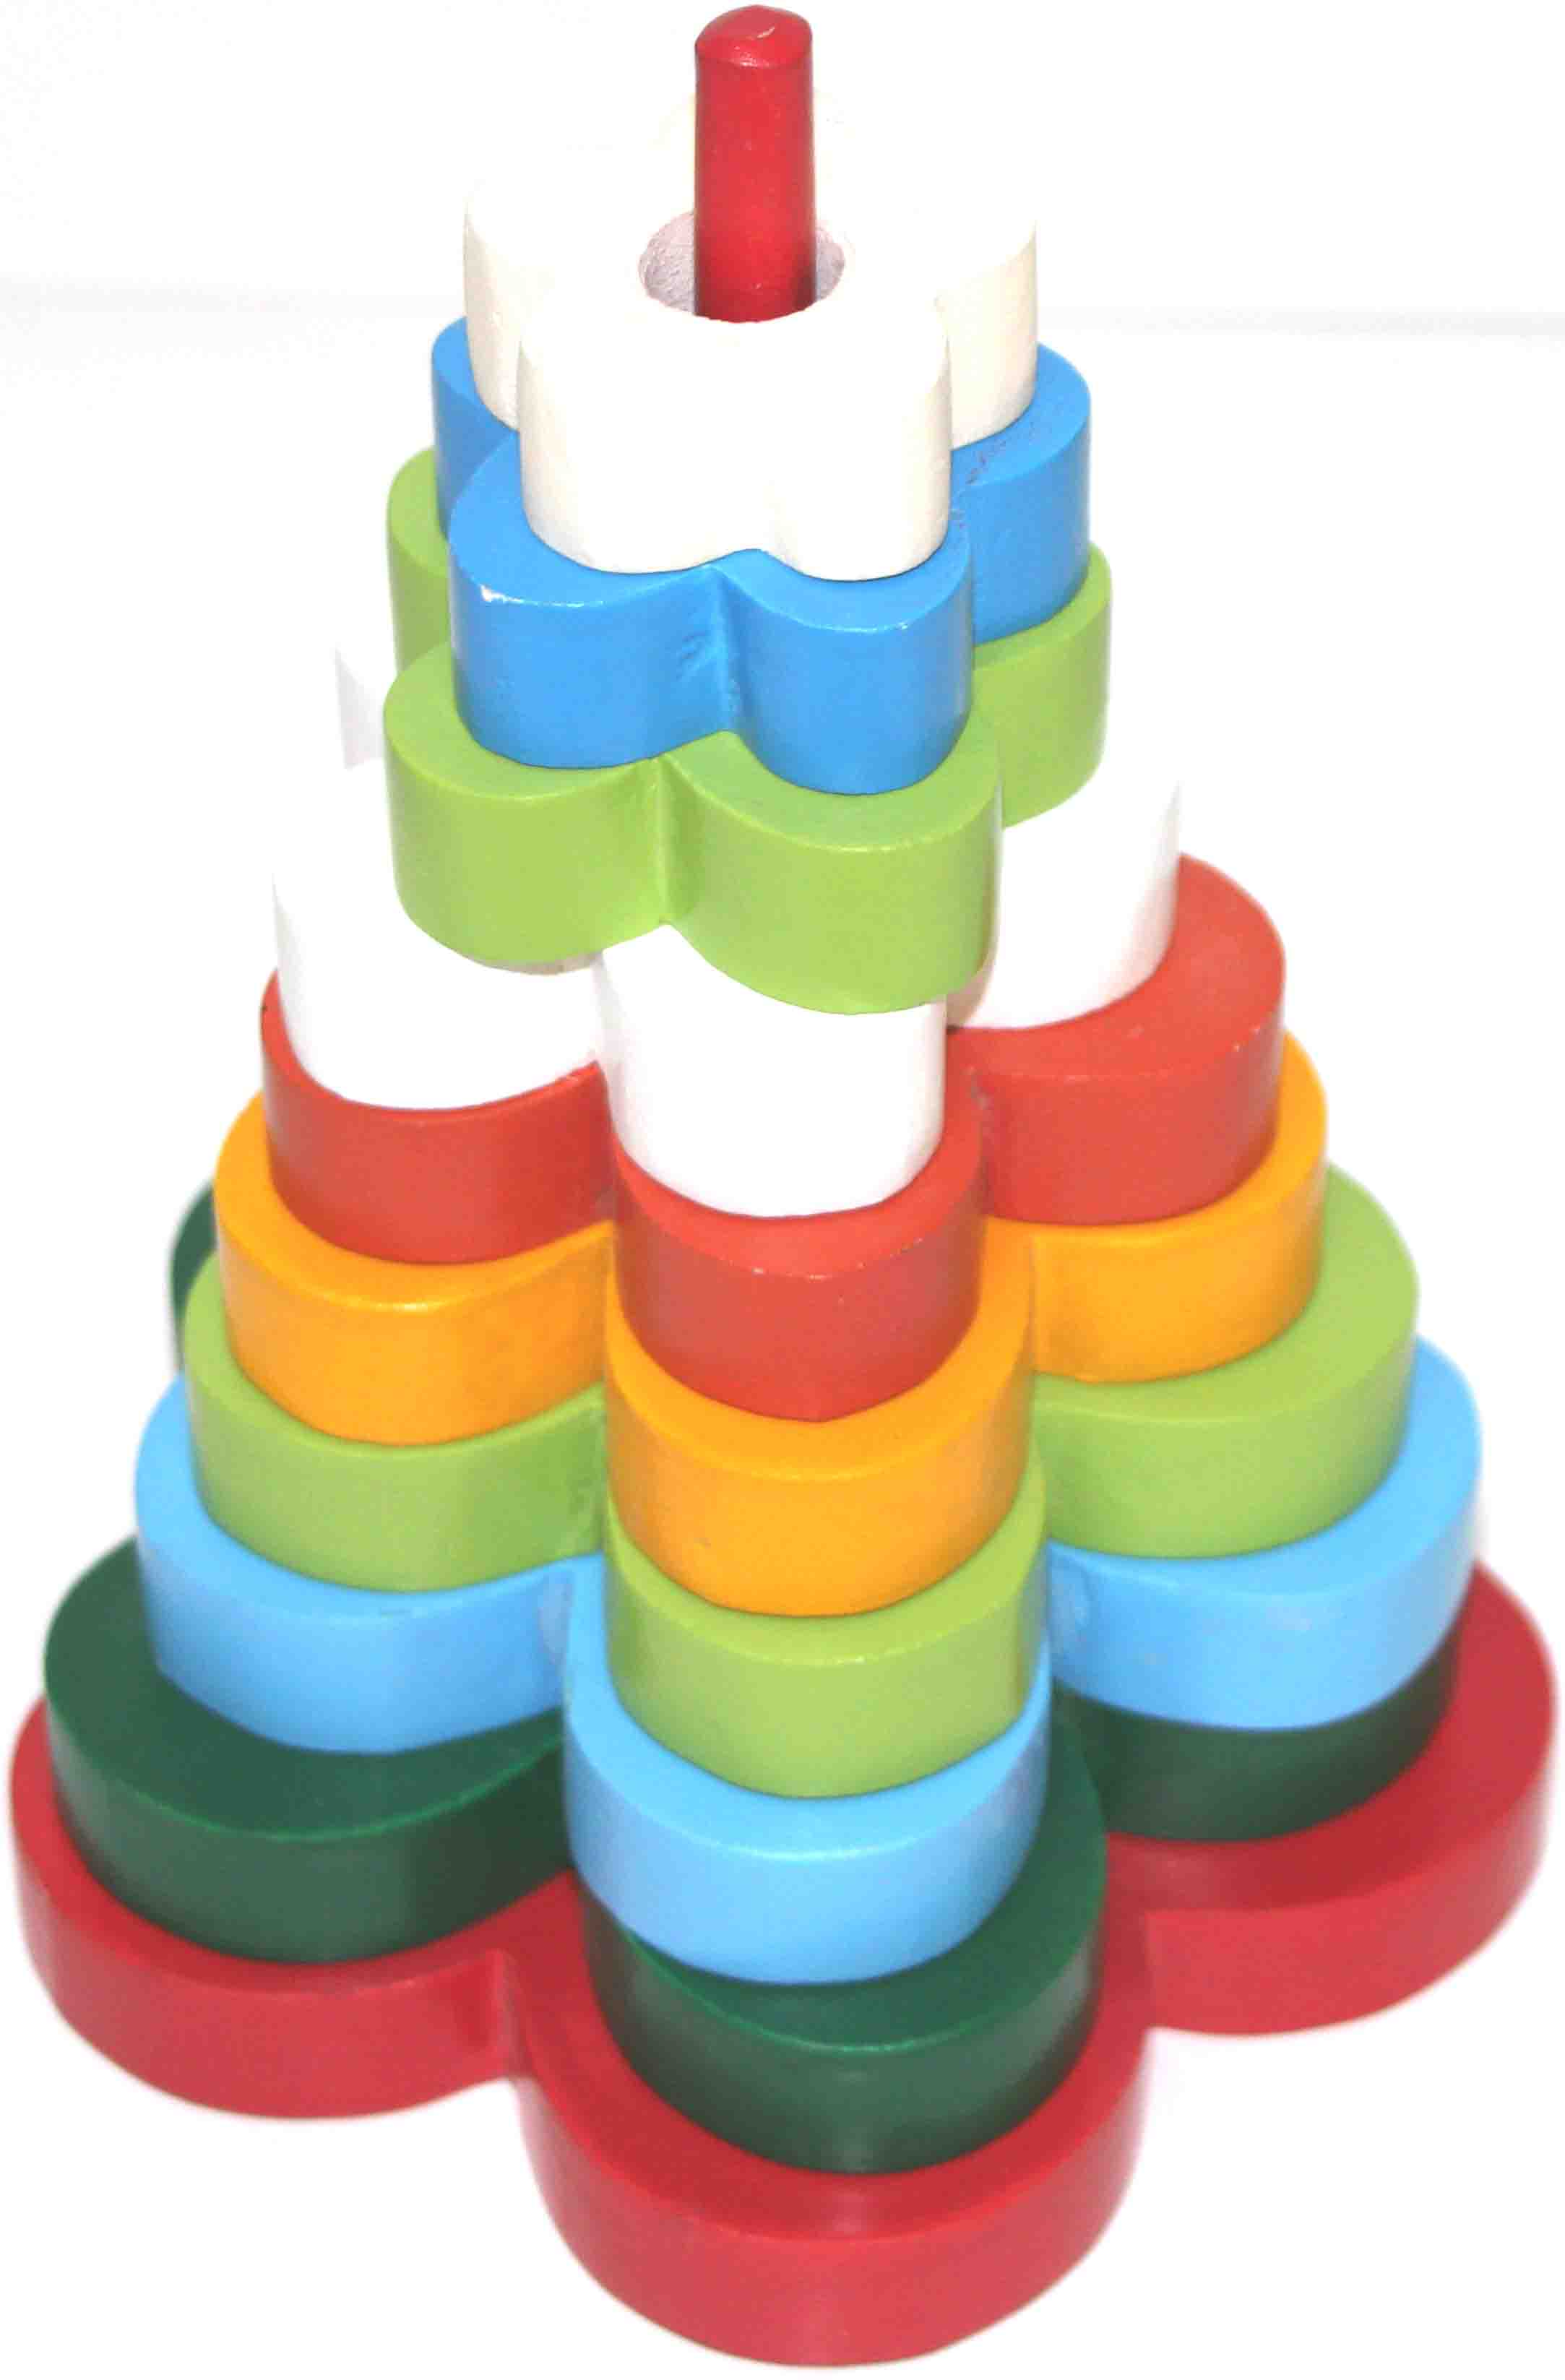 Wooden Stacking Tower Flower